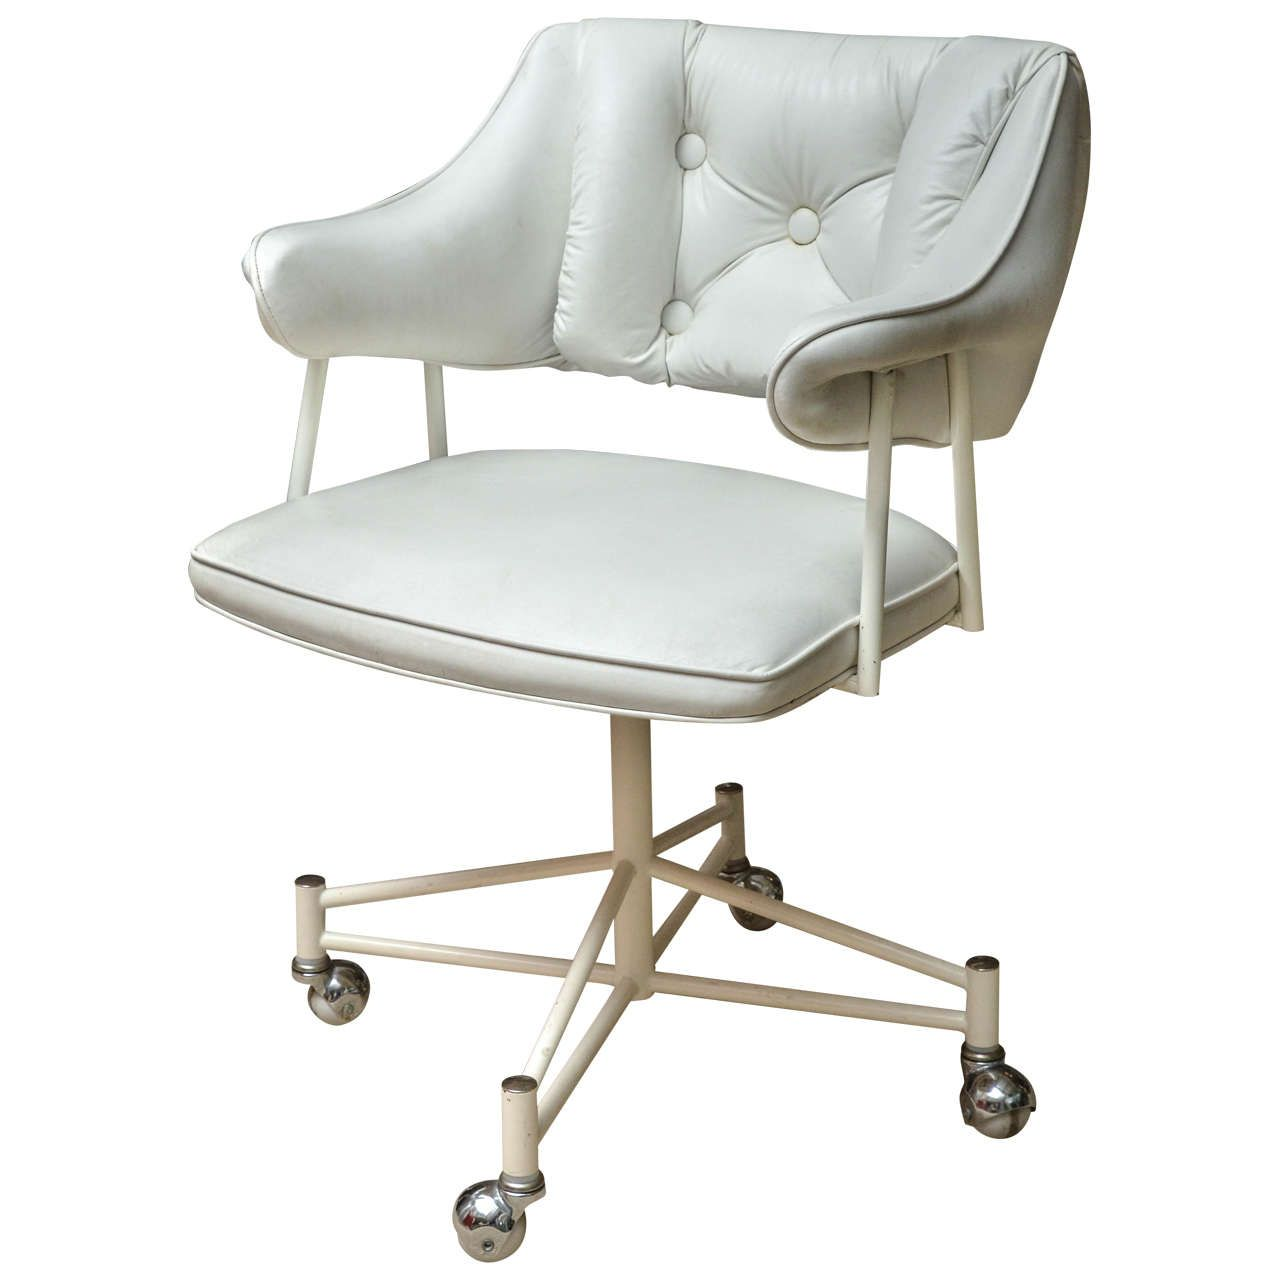 mid century modern office chairs. Shop For One-of-a-kind, Vintage, Mid-century Modern And Antique Office Chairs Desk From The Best Dealers Stores In USA. Mid Century